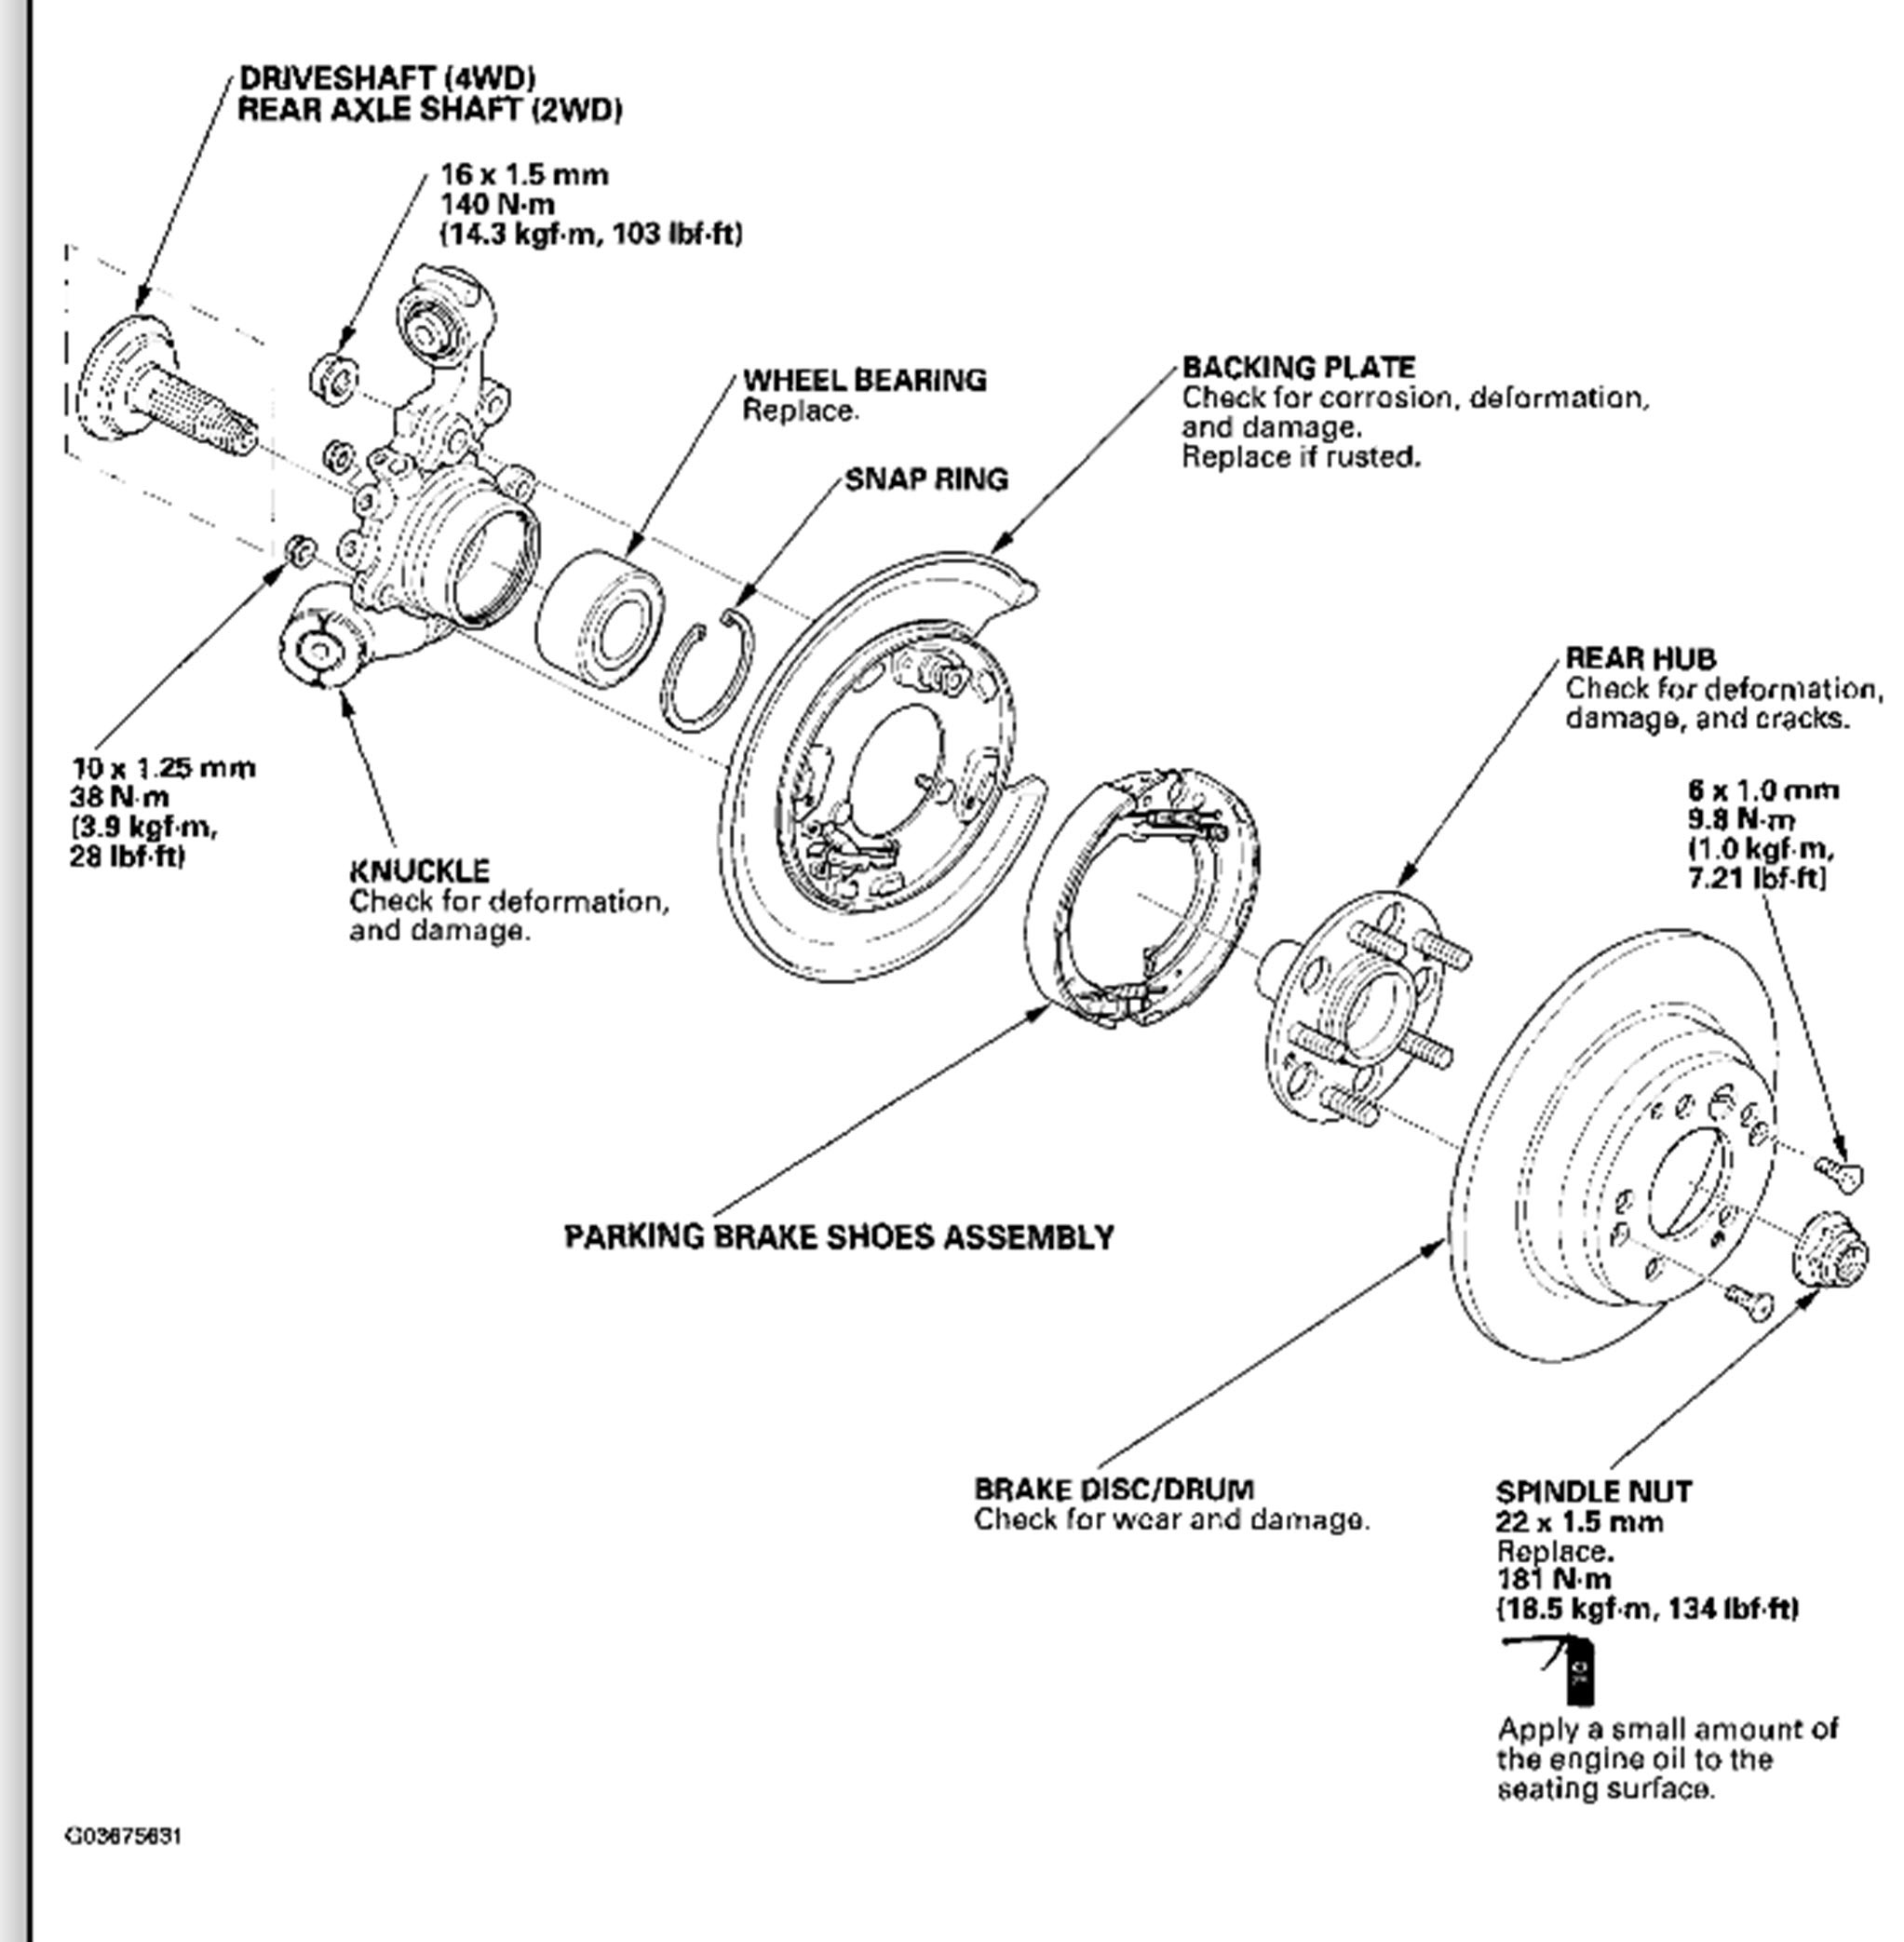 Acura Ilx Engine Diagram. Acura. Auto Wiring Diagram